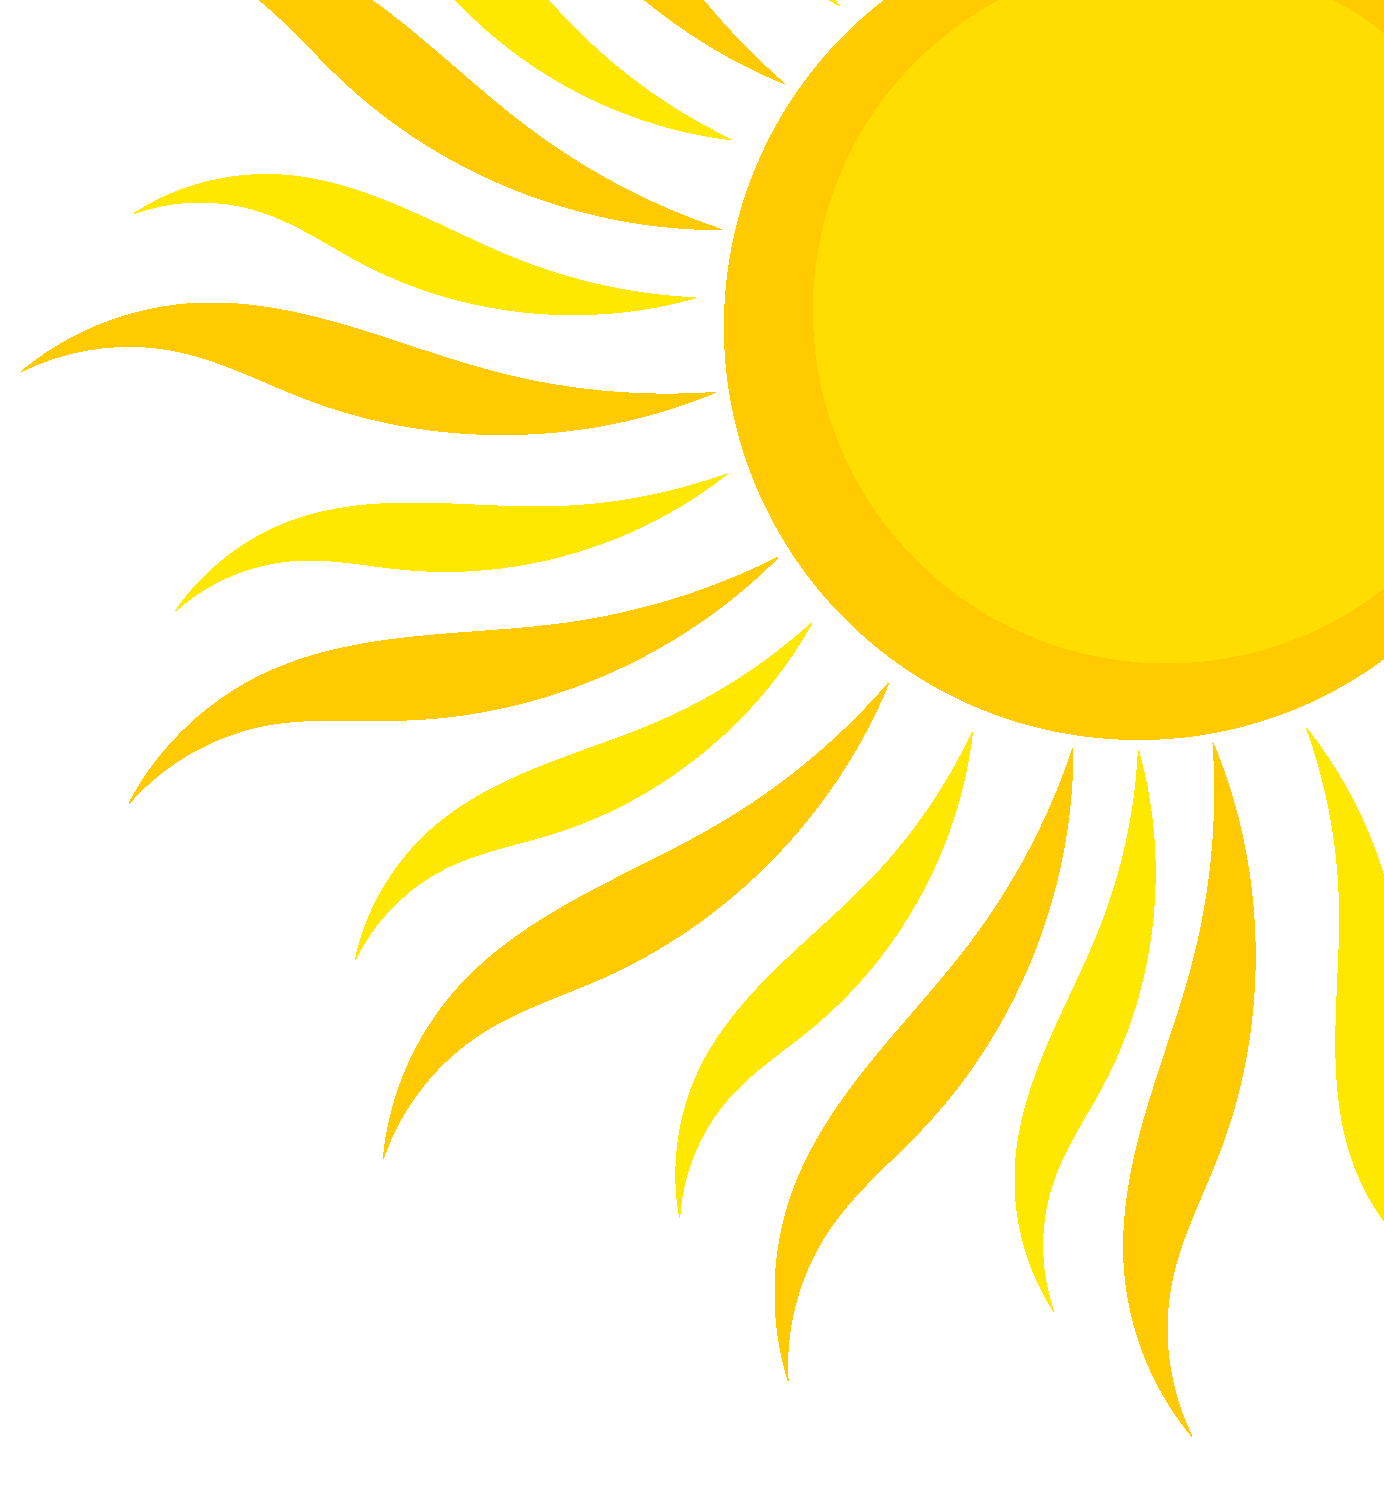 Summer Sun Png Download Number 41157 Daily Updated Free Icons And Png Images For Your Projects All Images Use To Free For Pe Sun Clip Art Sun Art Clip Art